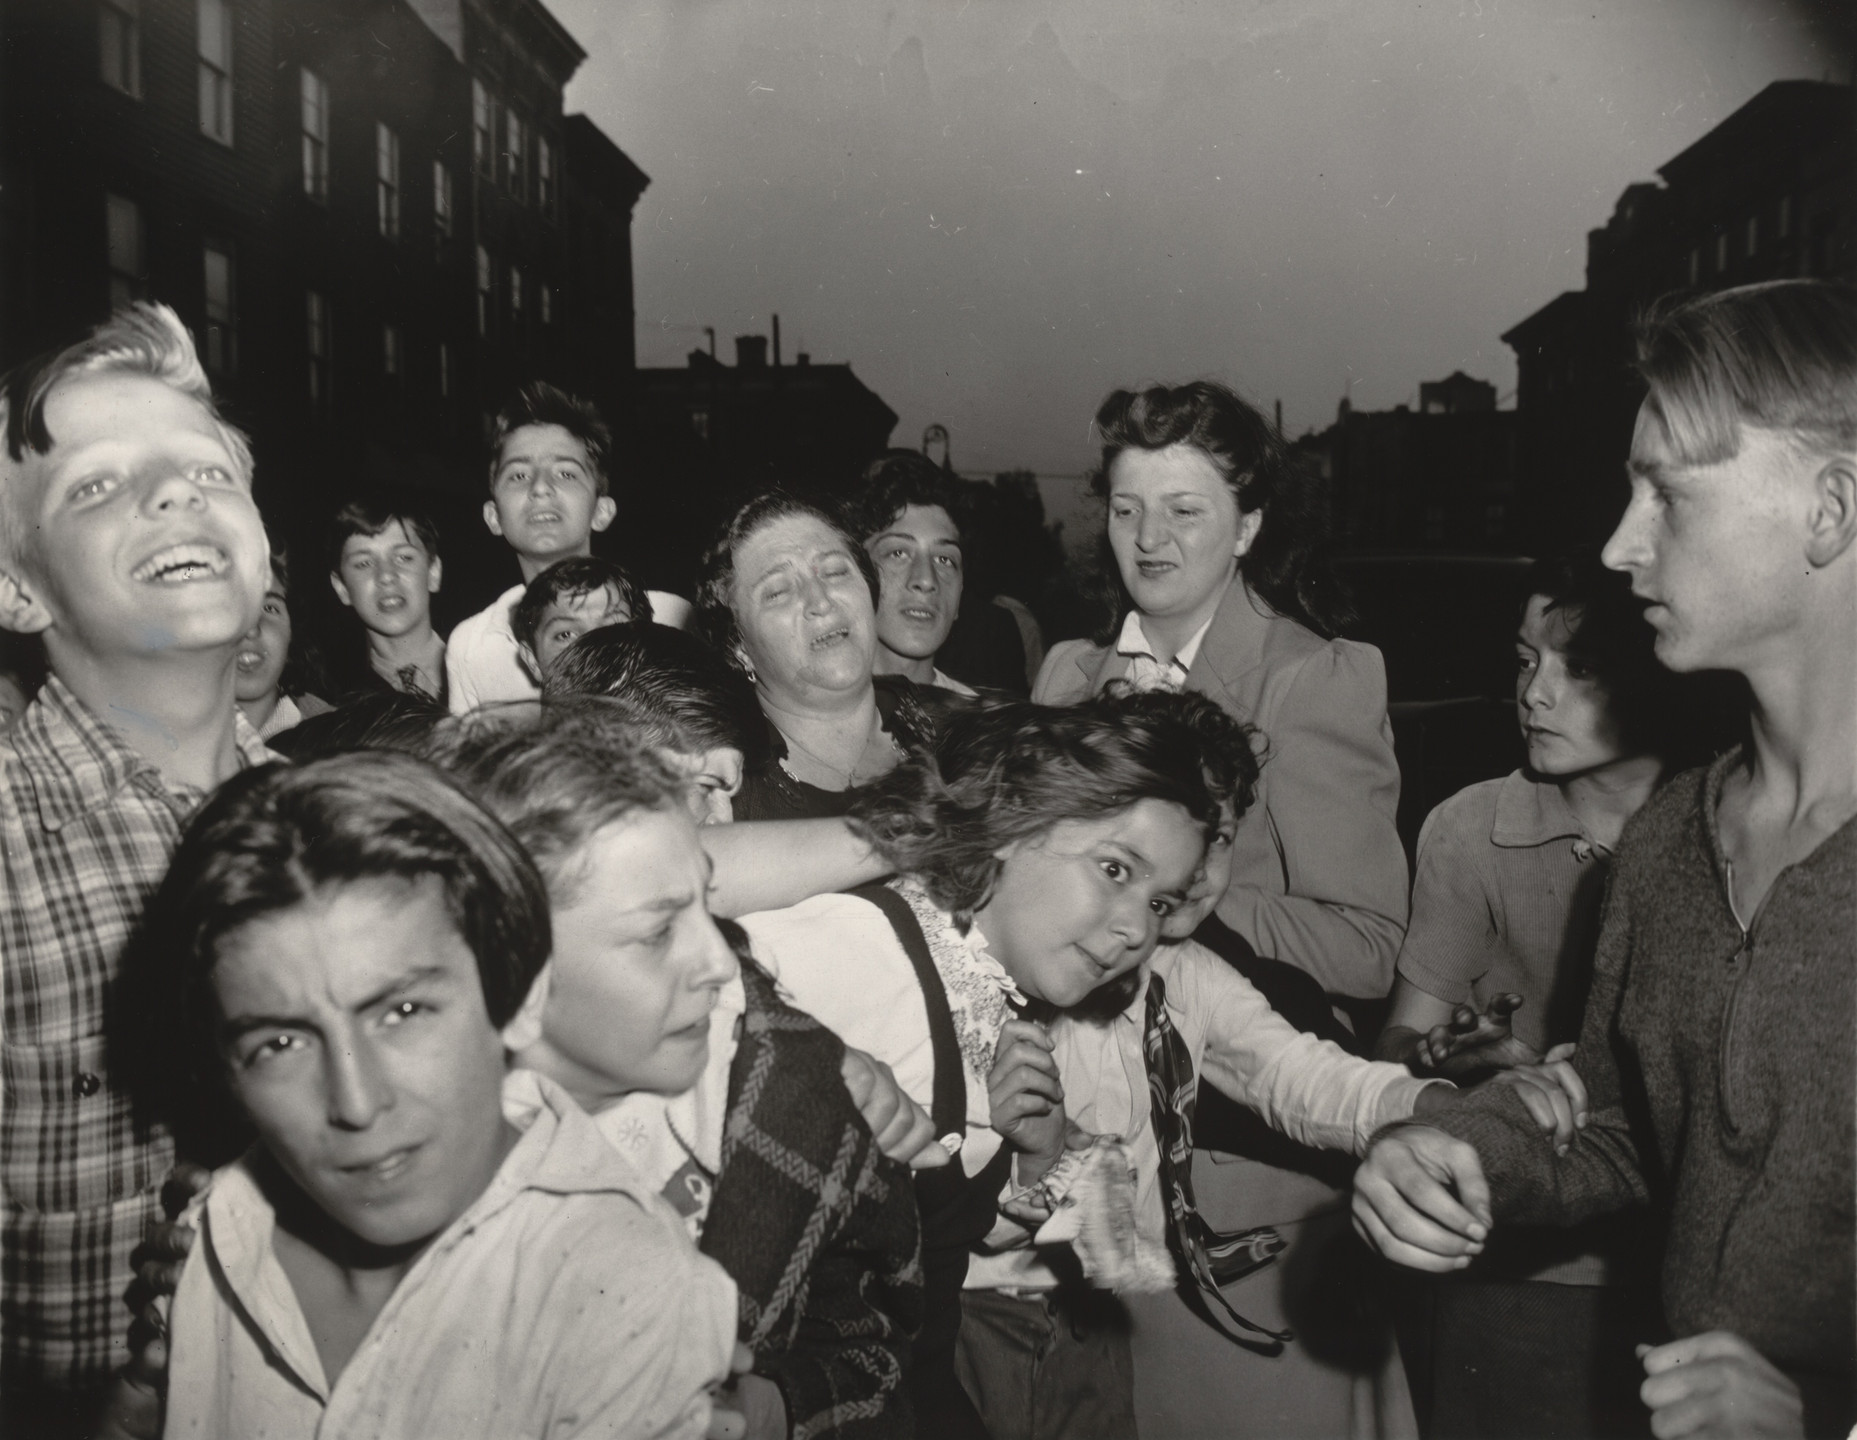 Weegee (Arthur Fellig). Brooklyn School Children See Gambler Murdered in Street. 1941